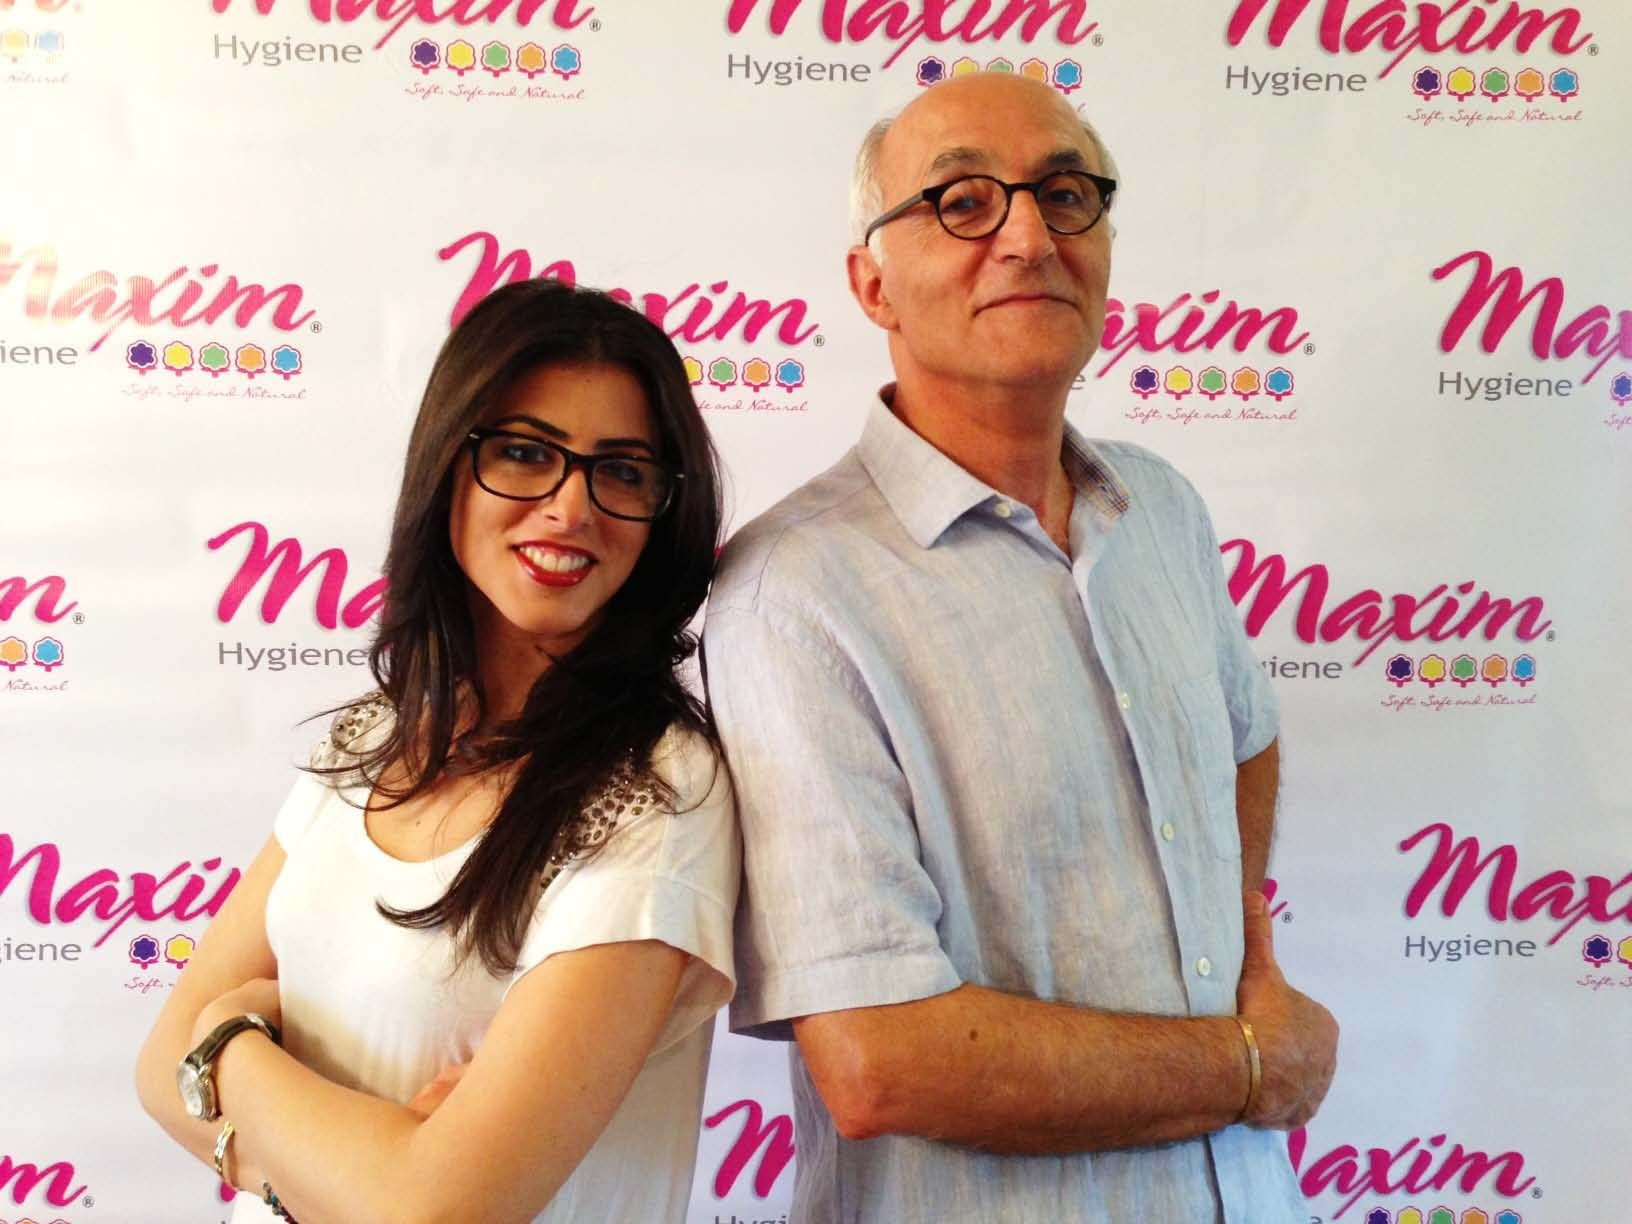 Whats in a Tampon? Immigrant Dad's Mission to Transform Feminine Hygiene